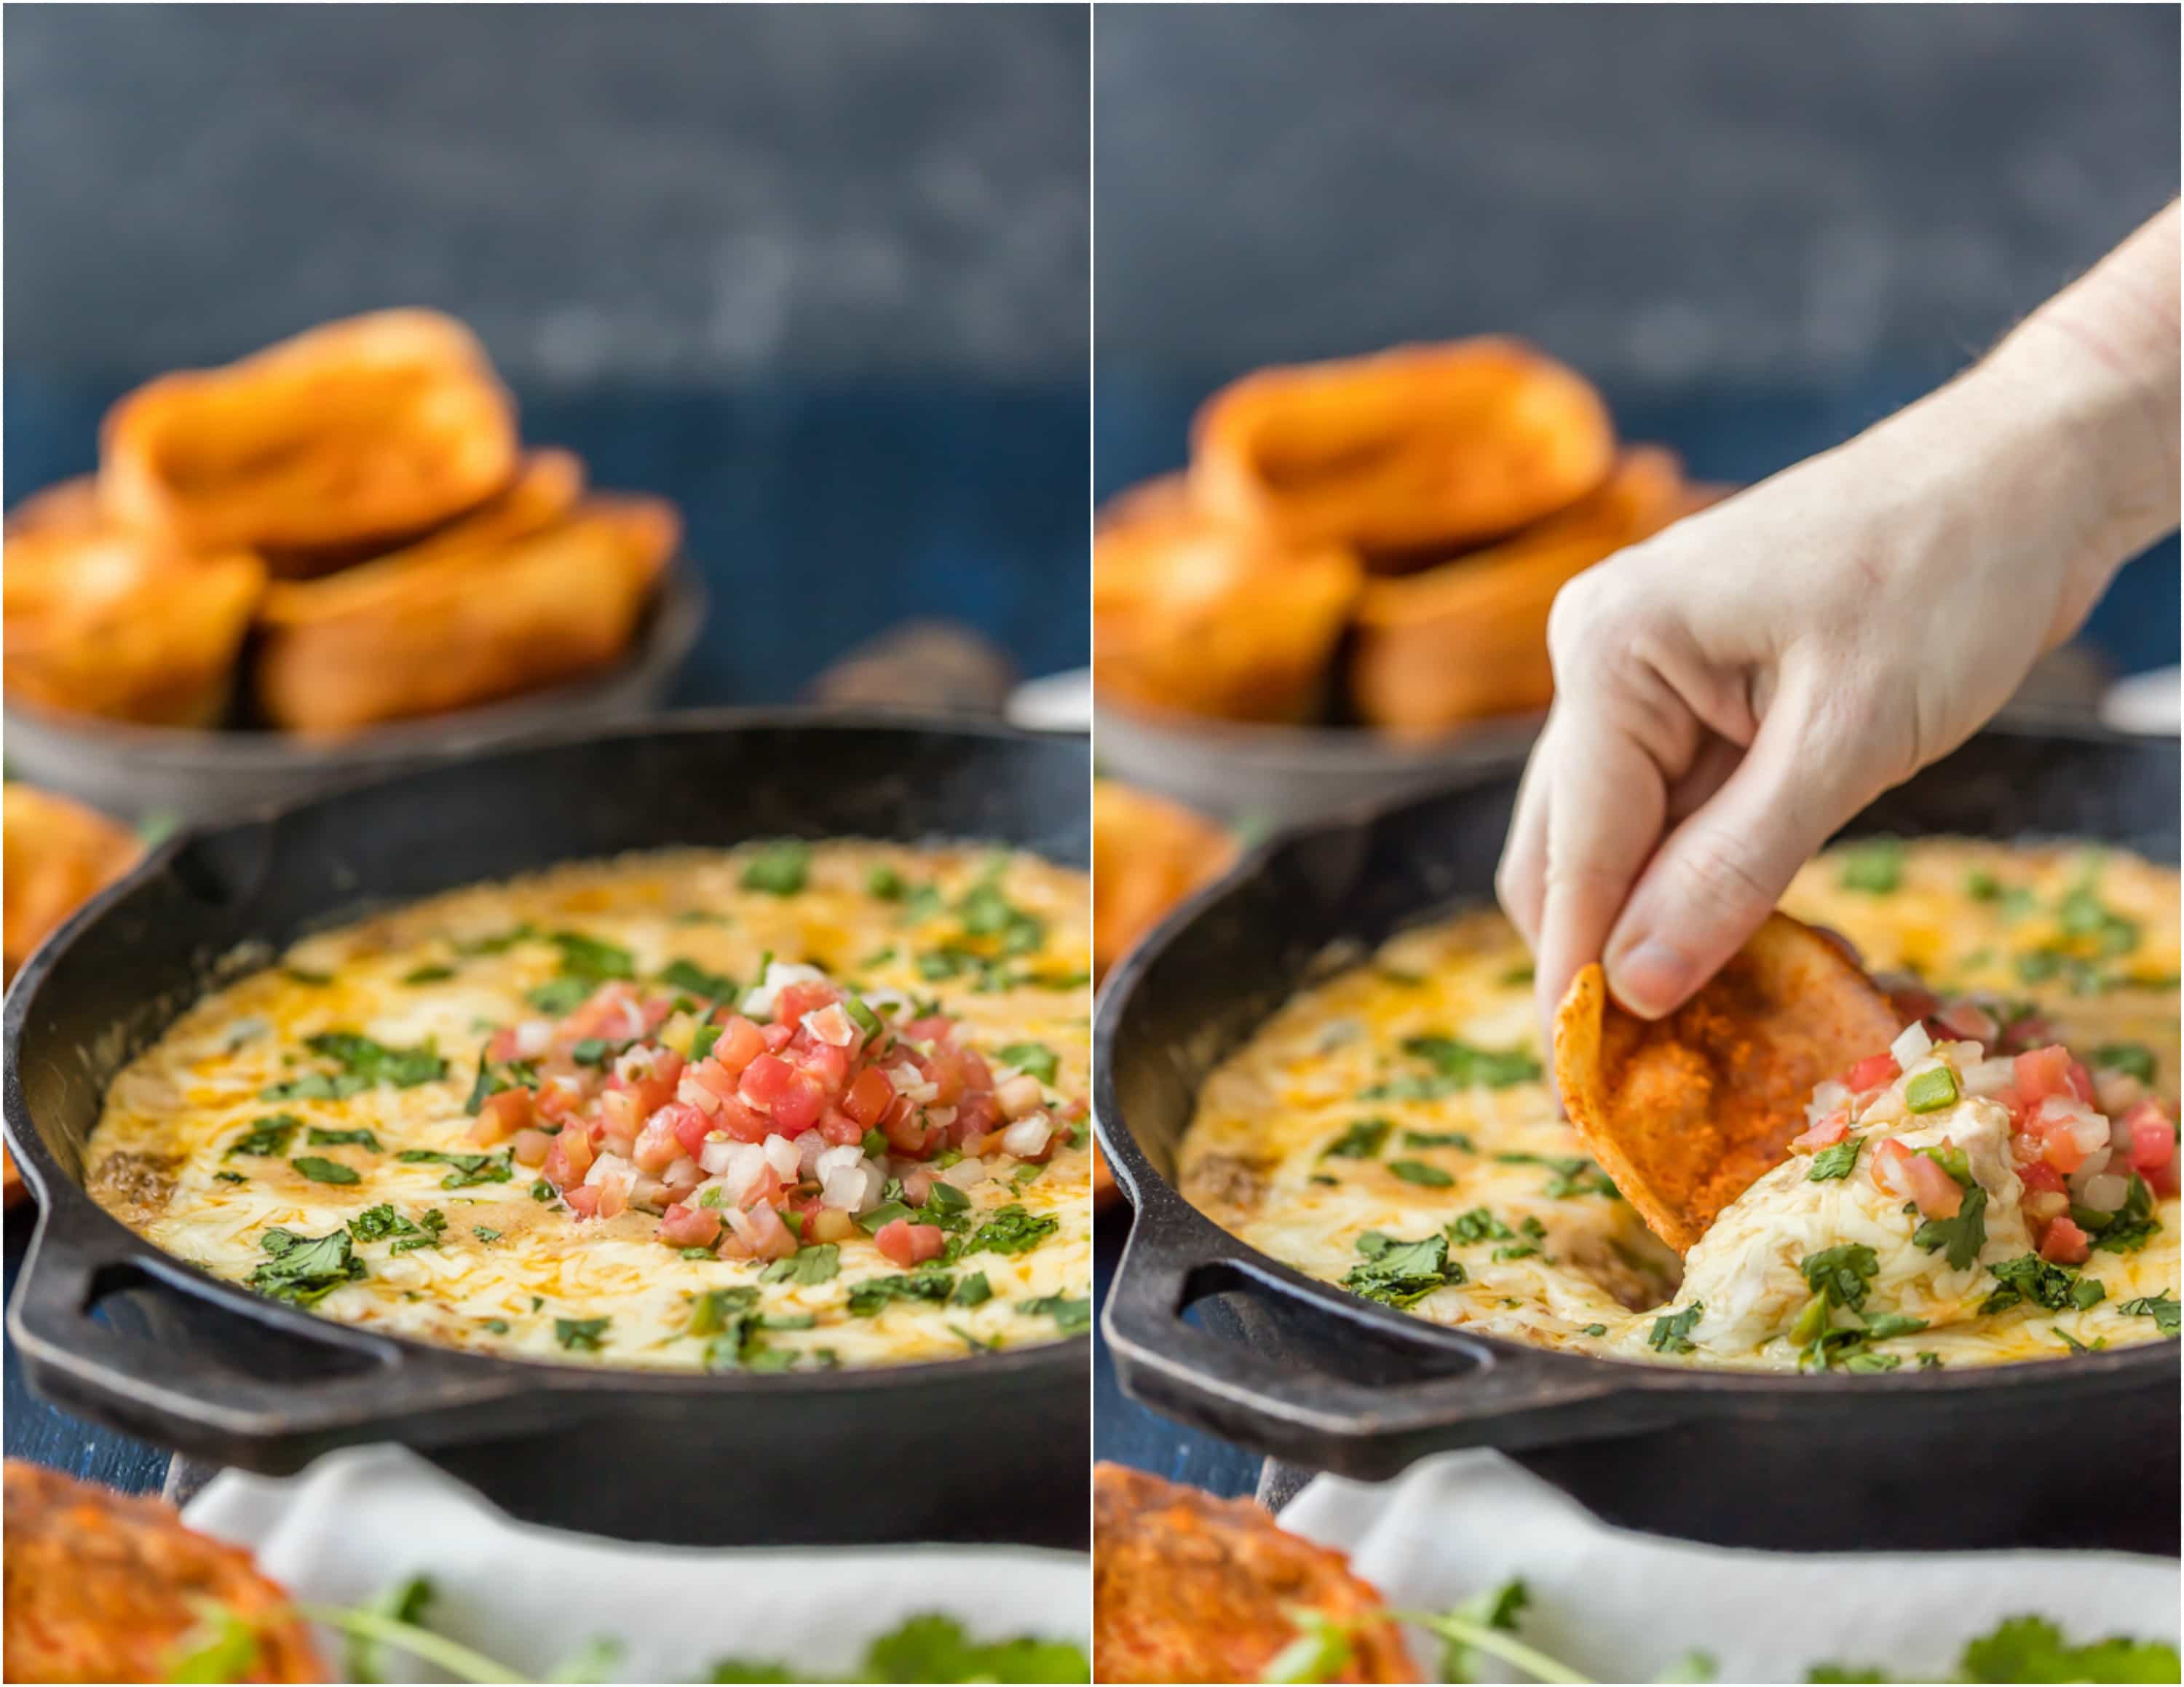 Fried Chili Cheese Dip Skillet, our favorite ONE POT dip recipe for tailgating! Skillet cheese dip never looked so good! Such a cheesy and easy dip recipe!